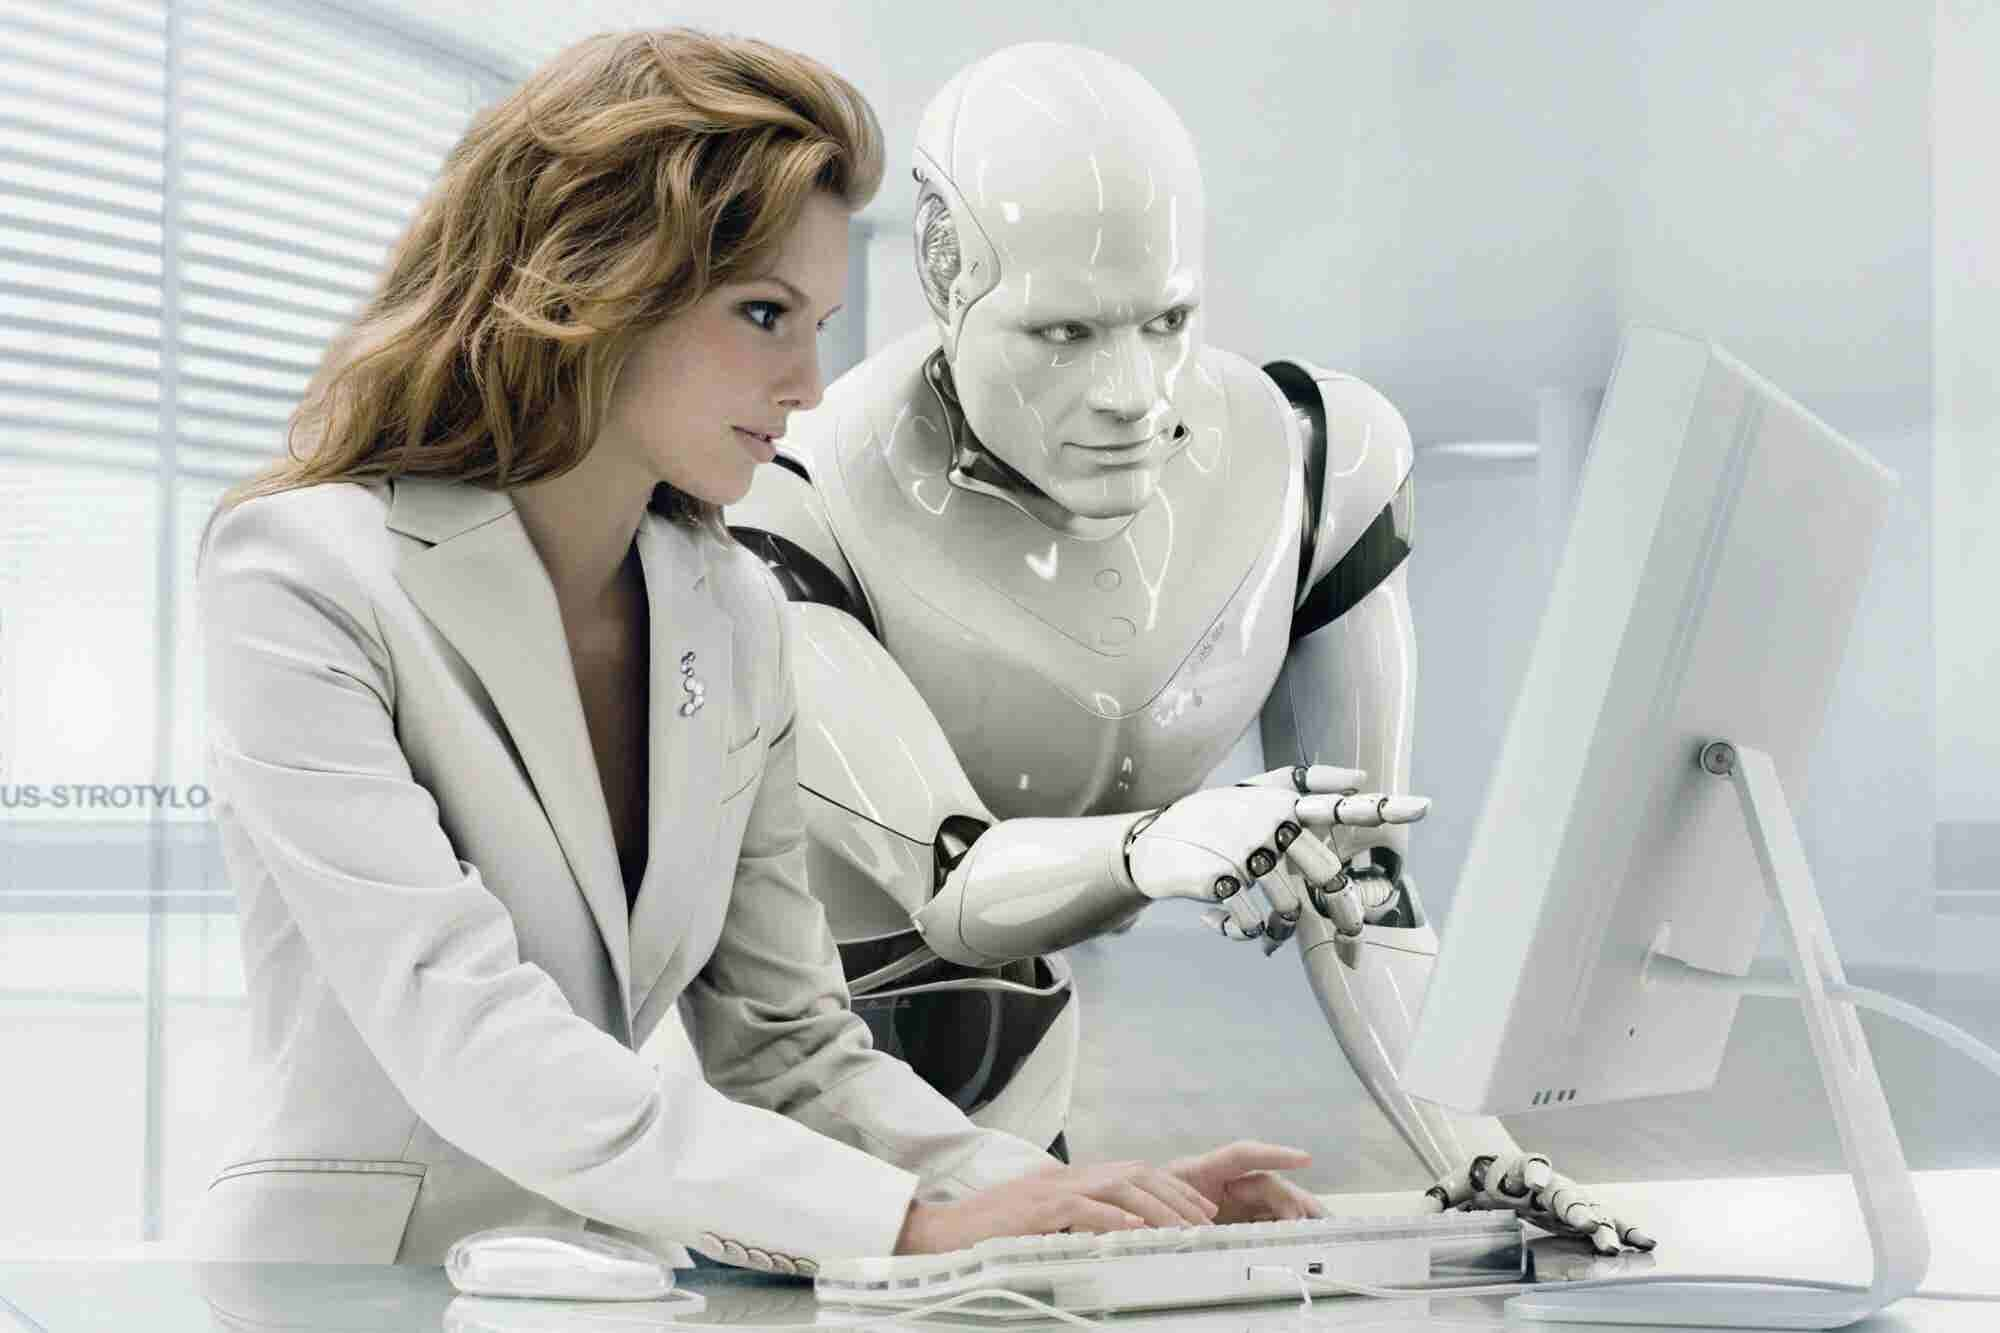 4 Choices You'll Make Running Your Startup in the Age of Robots and AI